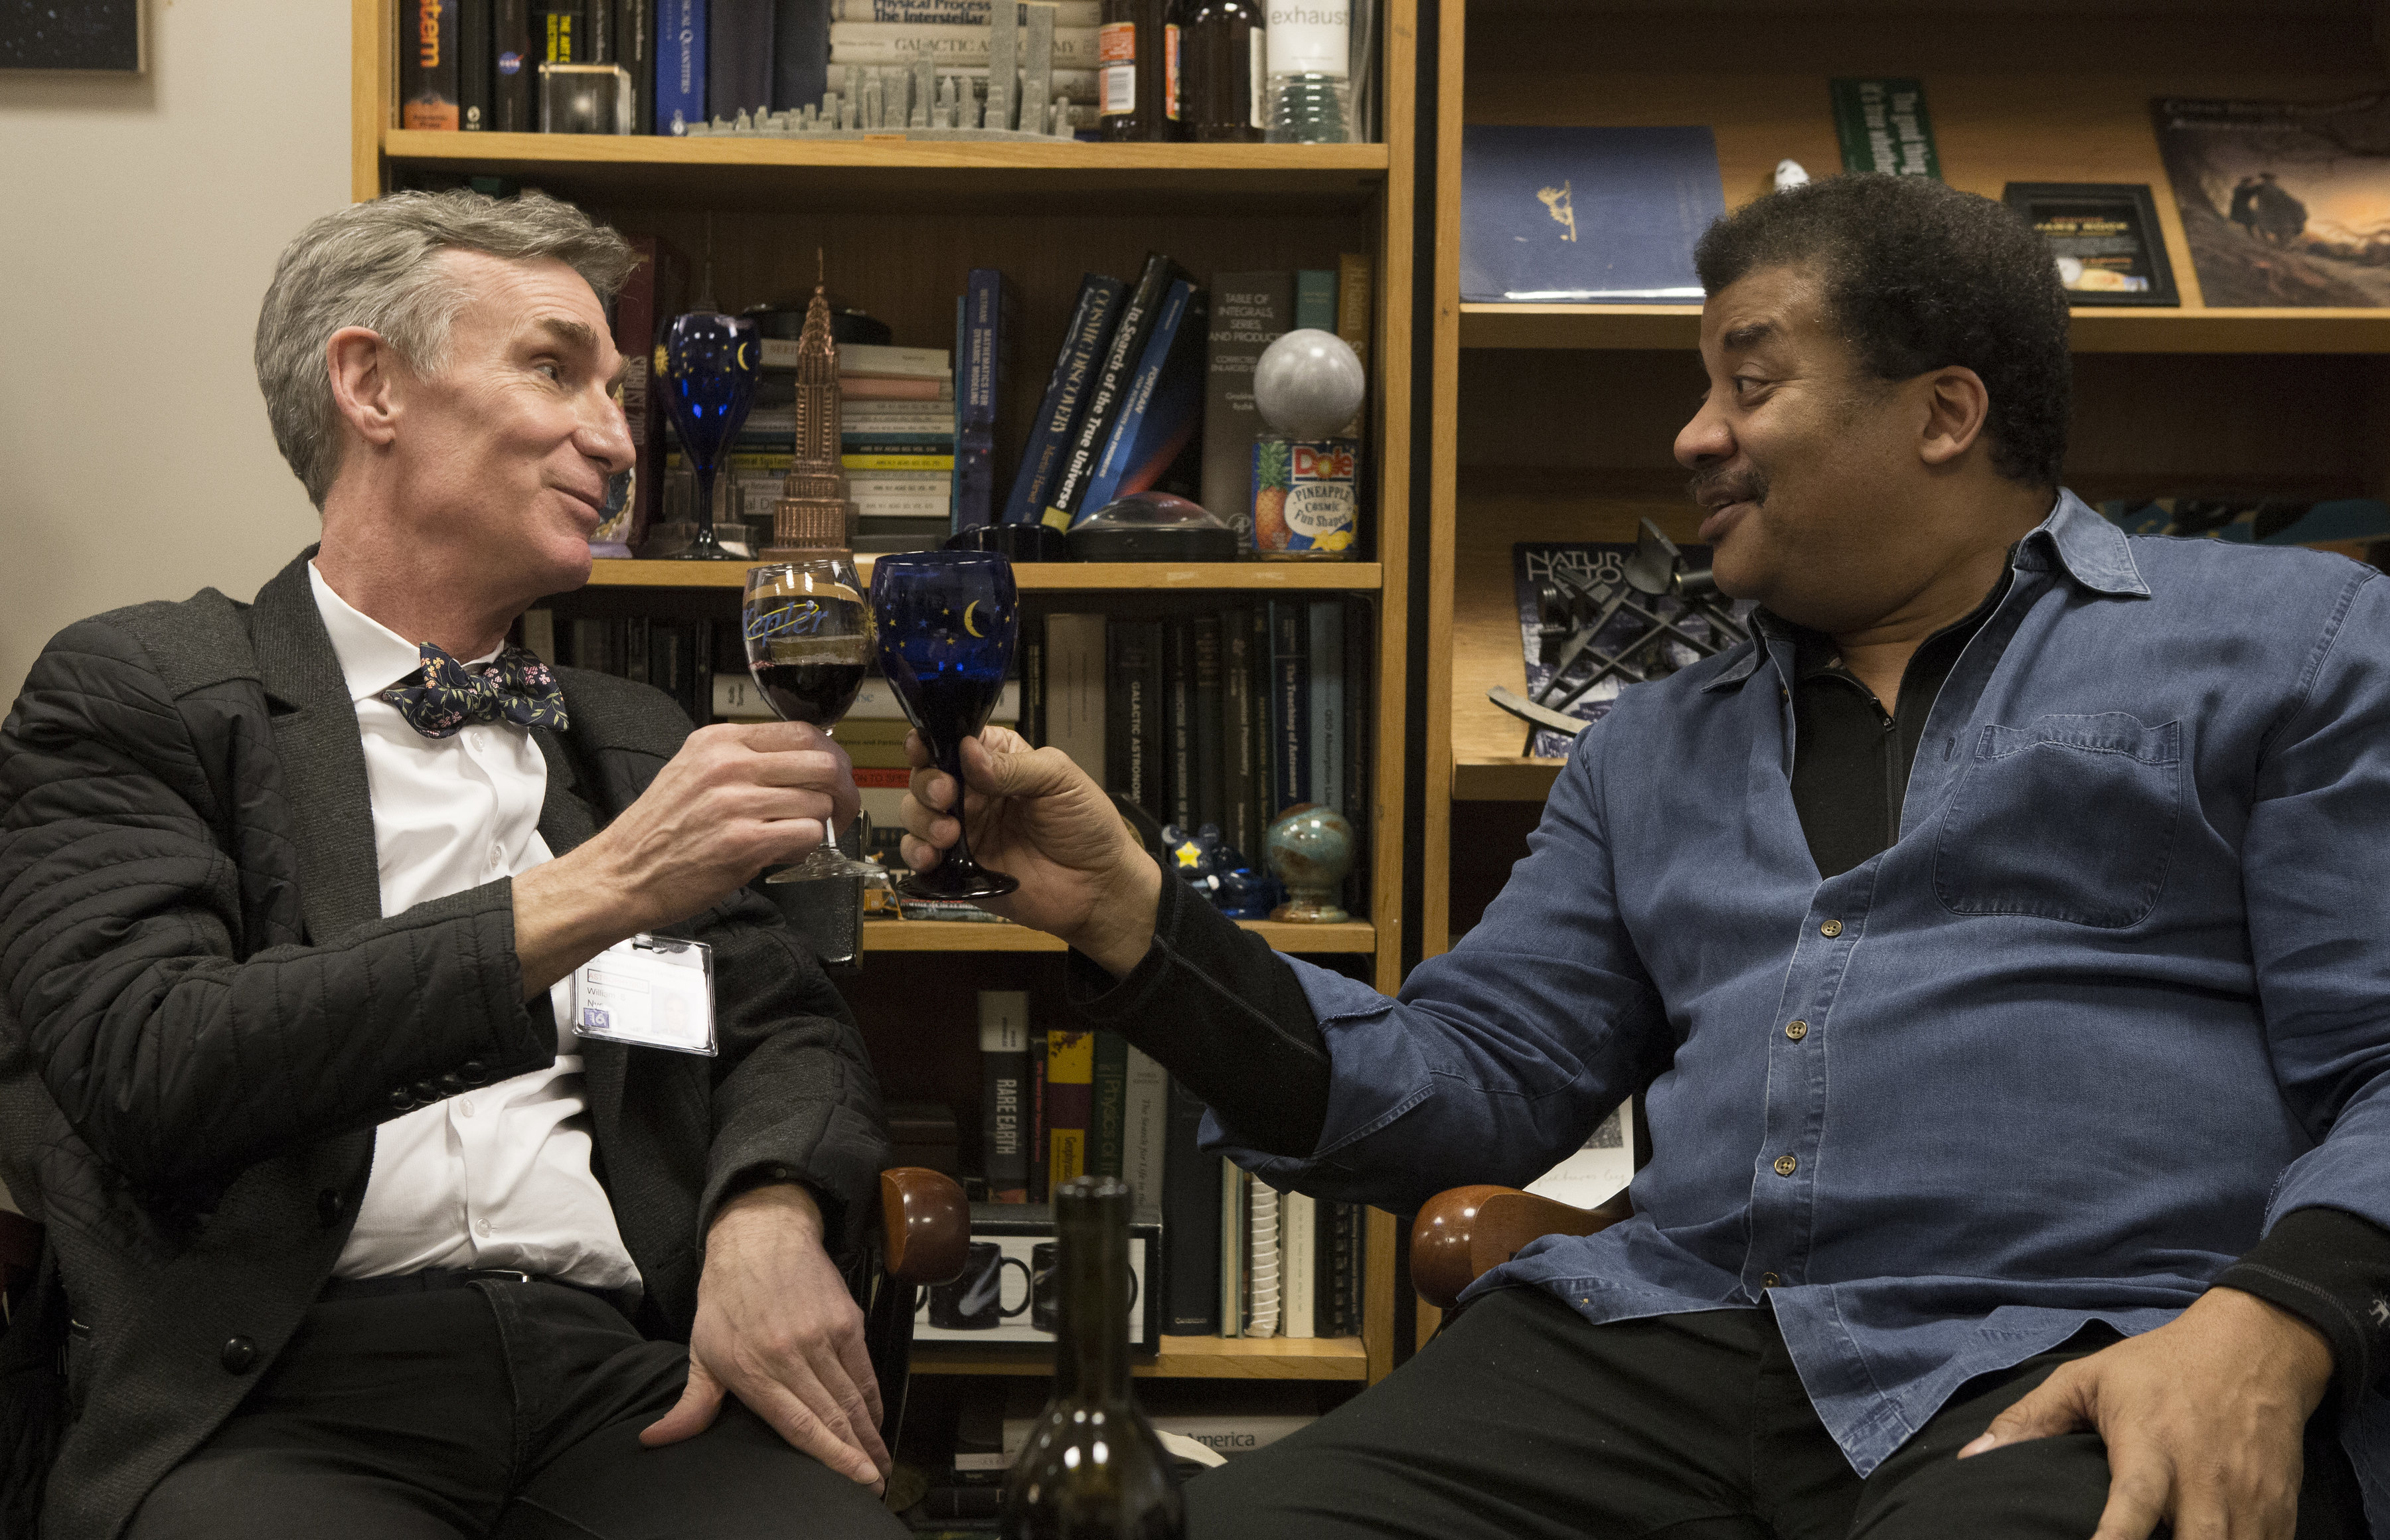 Nye and Neil deGrasse Tyson